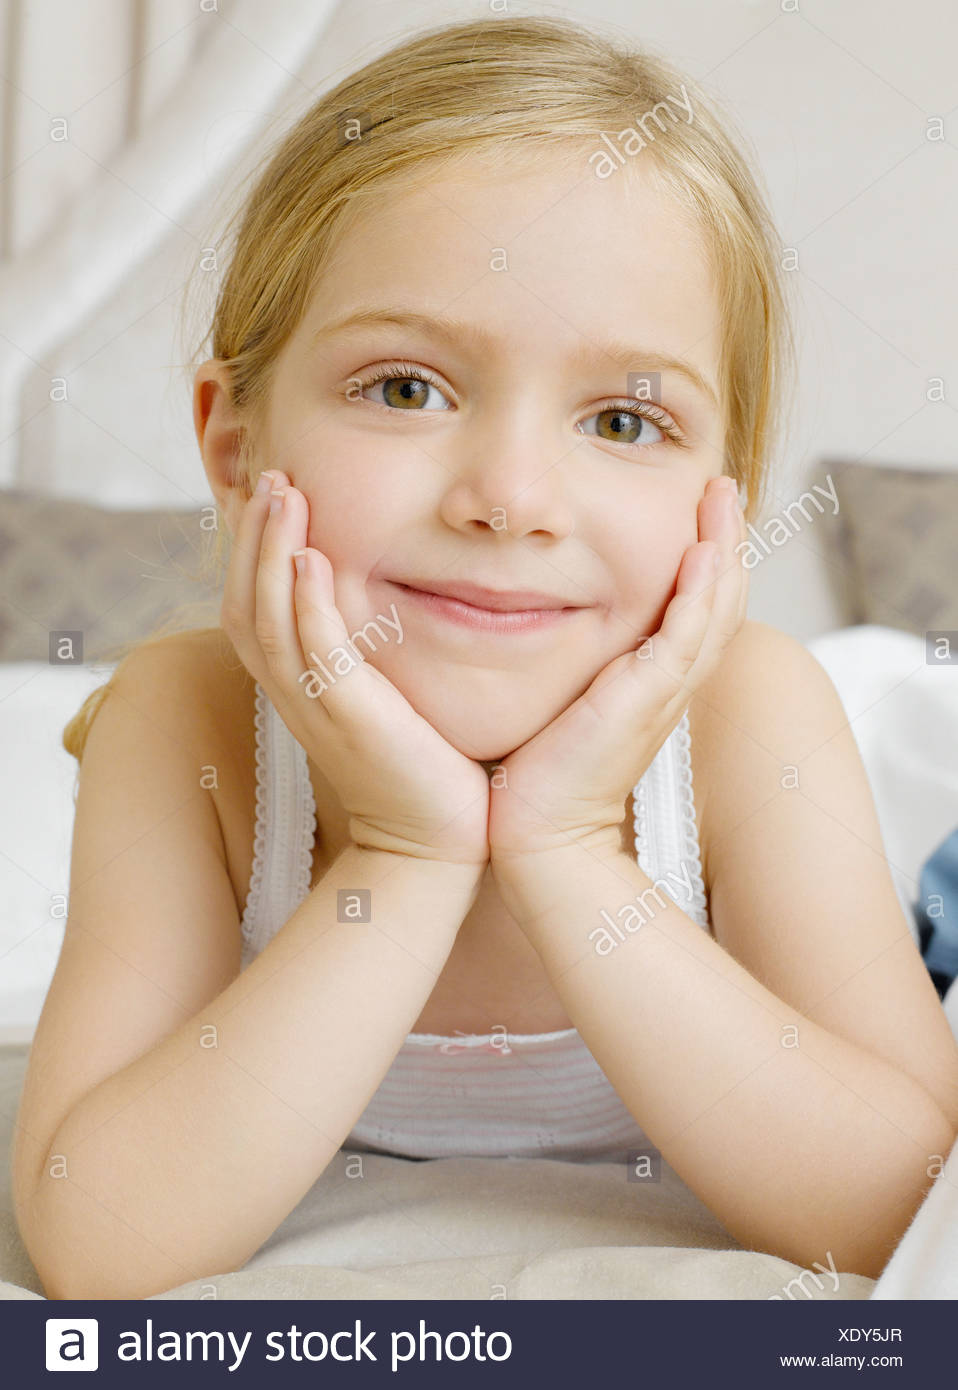 A young girl lying on her stomach cupping her face with her hands - Stock Image